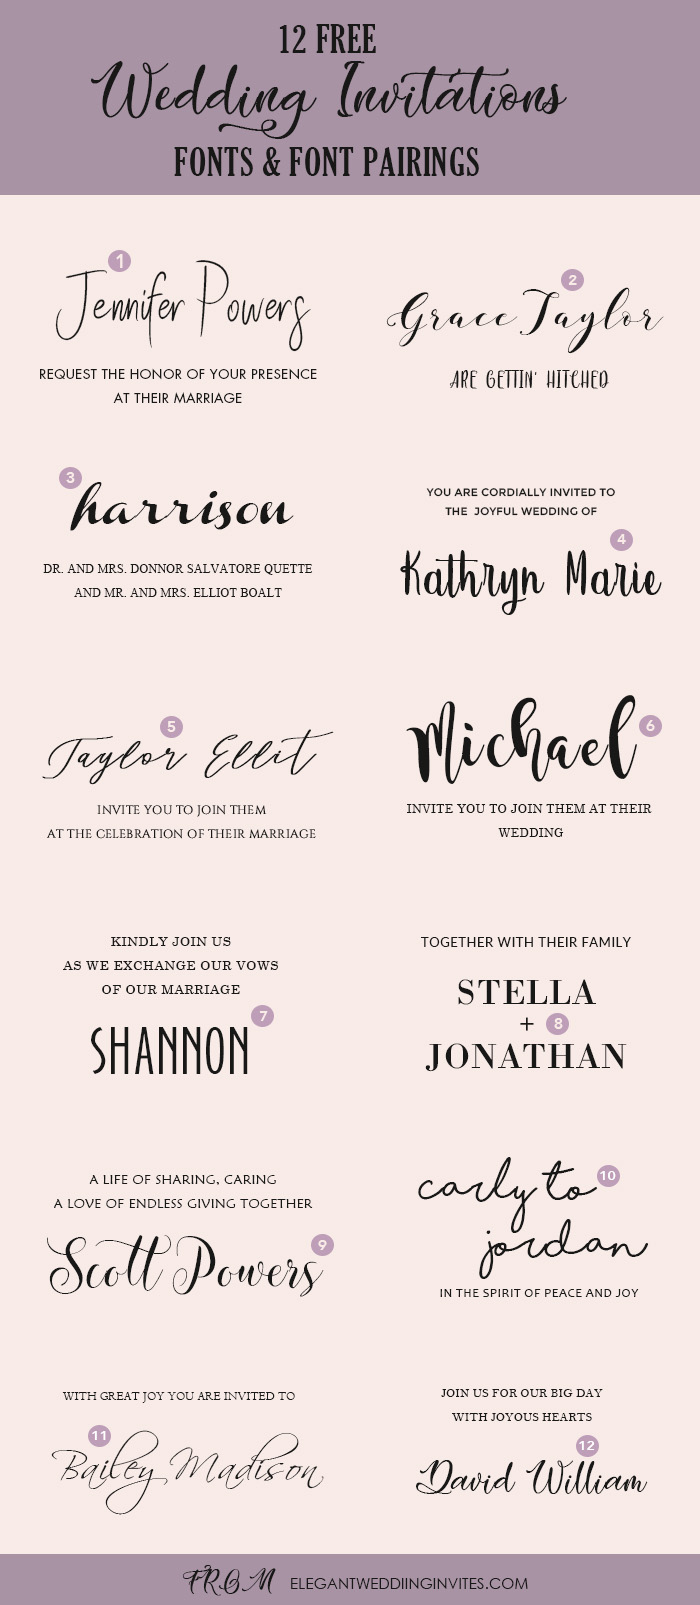 Wedding Invitation Fonts.Wedding Invitation Font Pairing Guide With Free Killer Fonts To